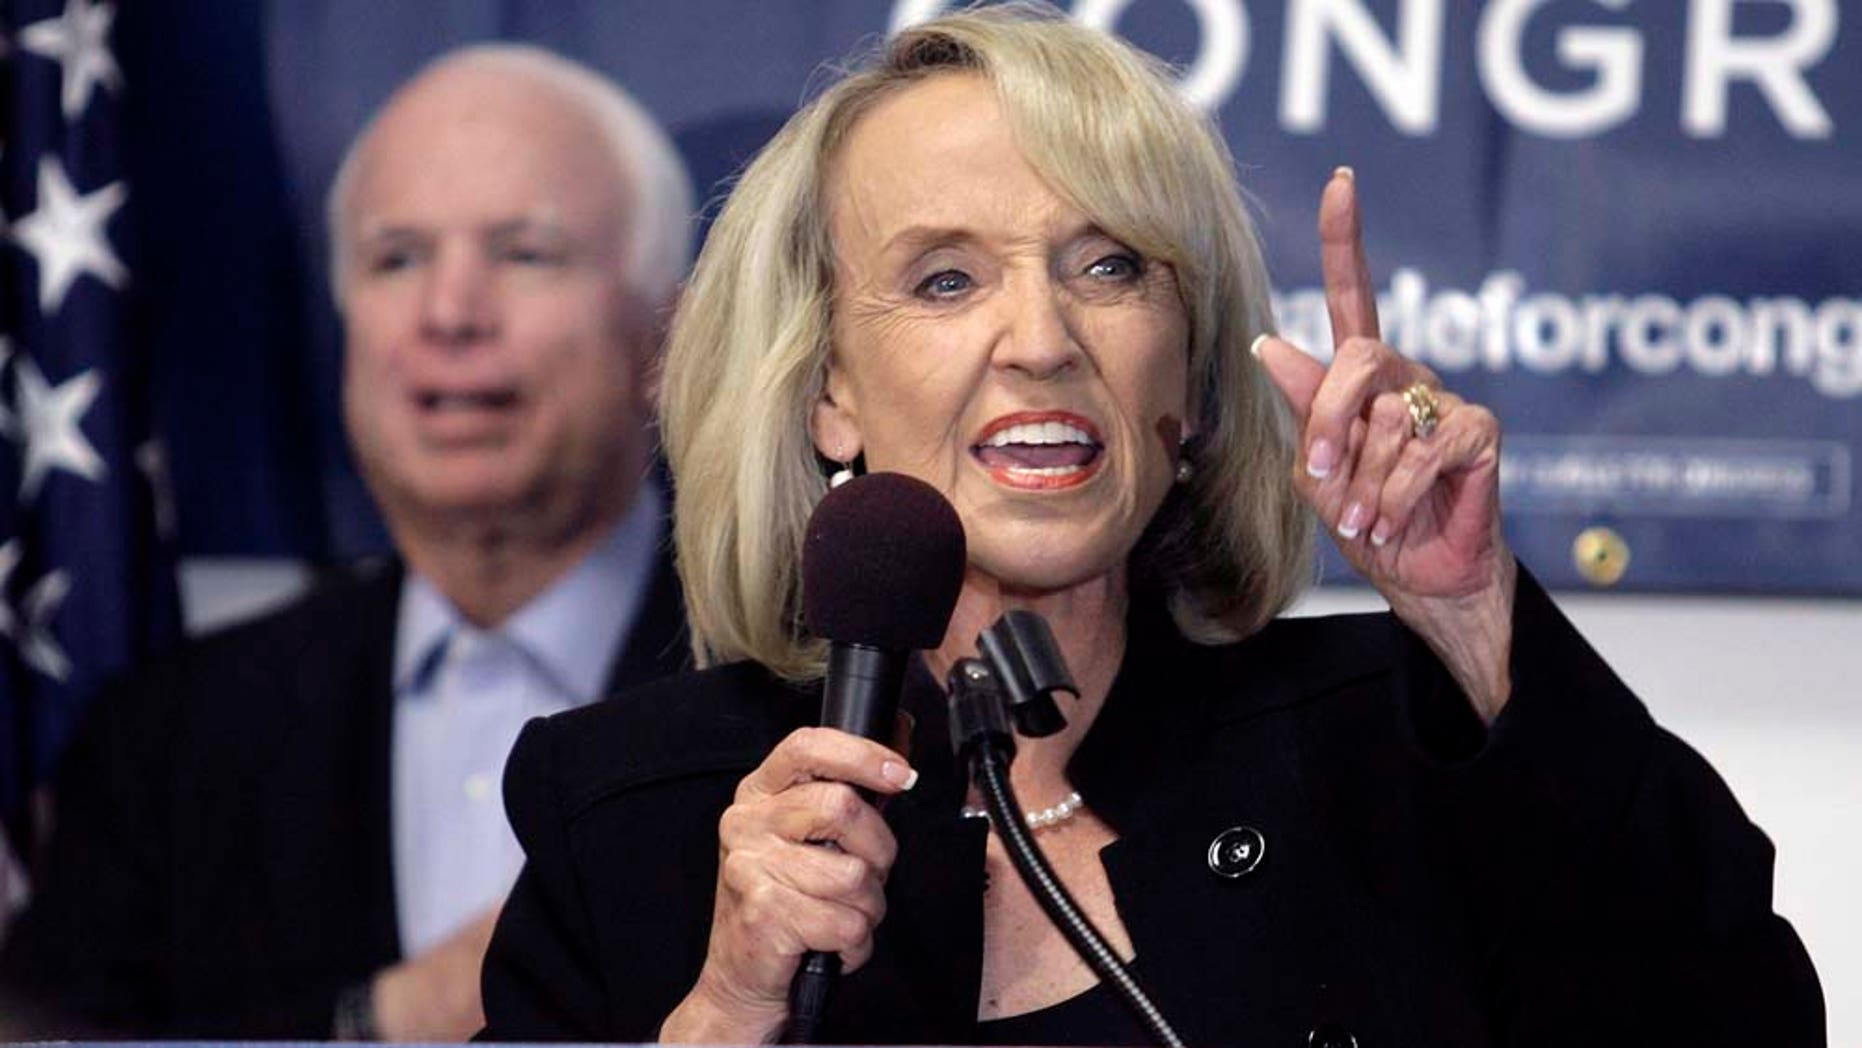 Gov. Jan Brewer, right ,addresses a group of supporters as Sen. John McCain, (R-Ariz.), left, cheers during a rally for Republican Congressional candidate Ben Quayle, at Quayle's campaign headquarters Saturday, Oct. 30, 2010, in Phoenix. (AP Photo/Paul Connors)